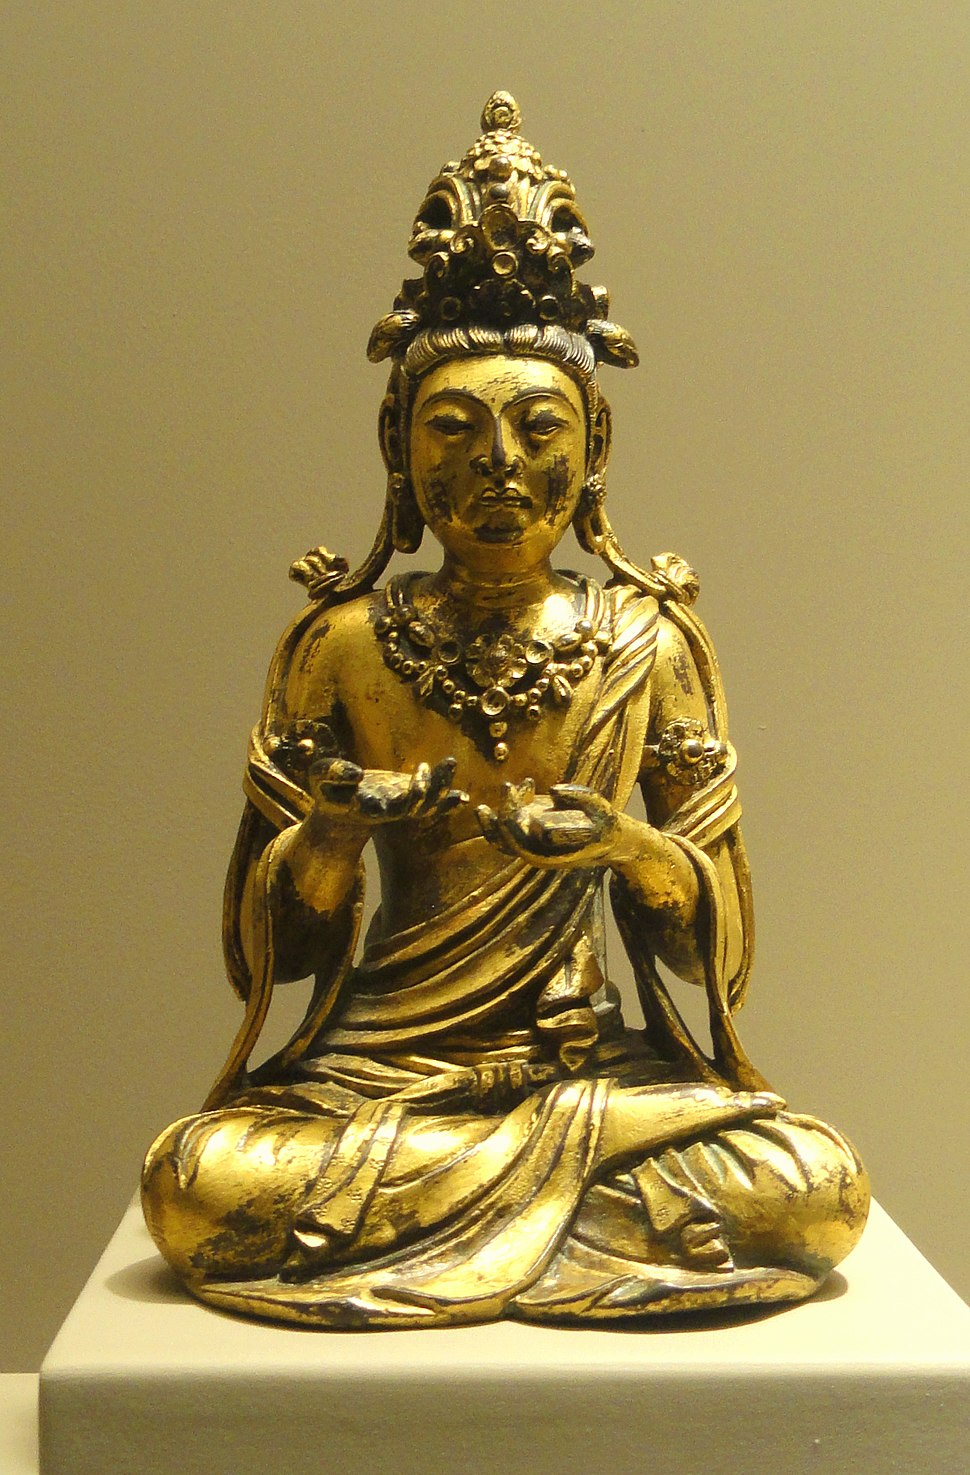 Seated Manjusri Bodhisattva, Chinese, Tang Dynasty or Five Dynasties, late 9th to early 10th century - Nelson-Atkins Museum of Art - DSC09127